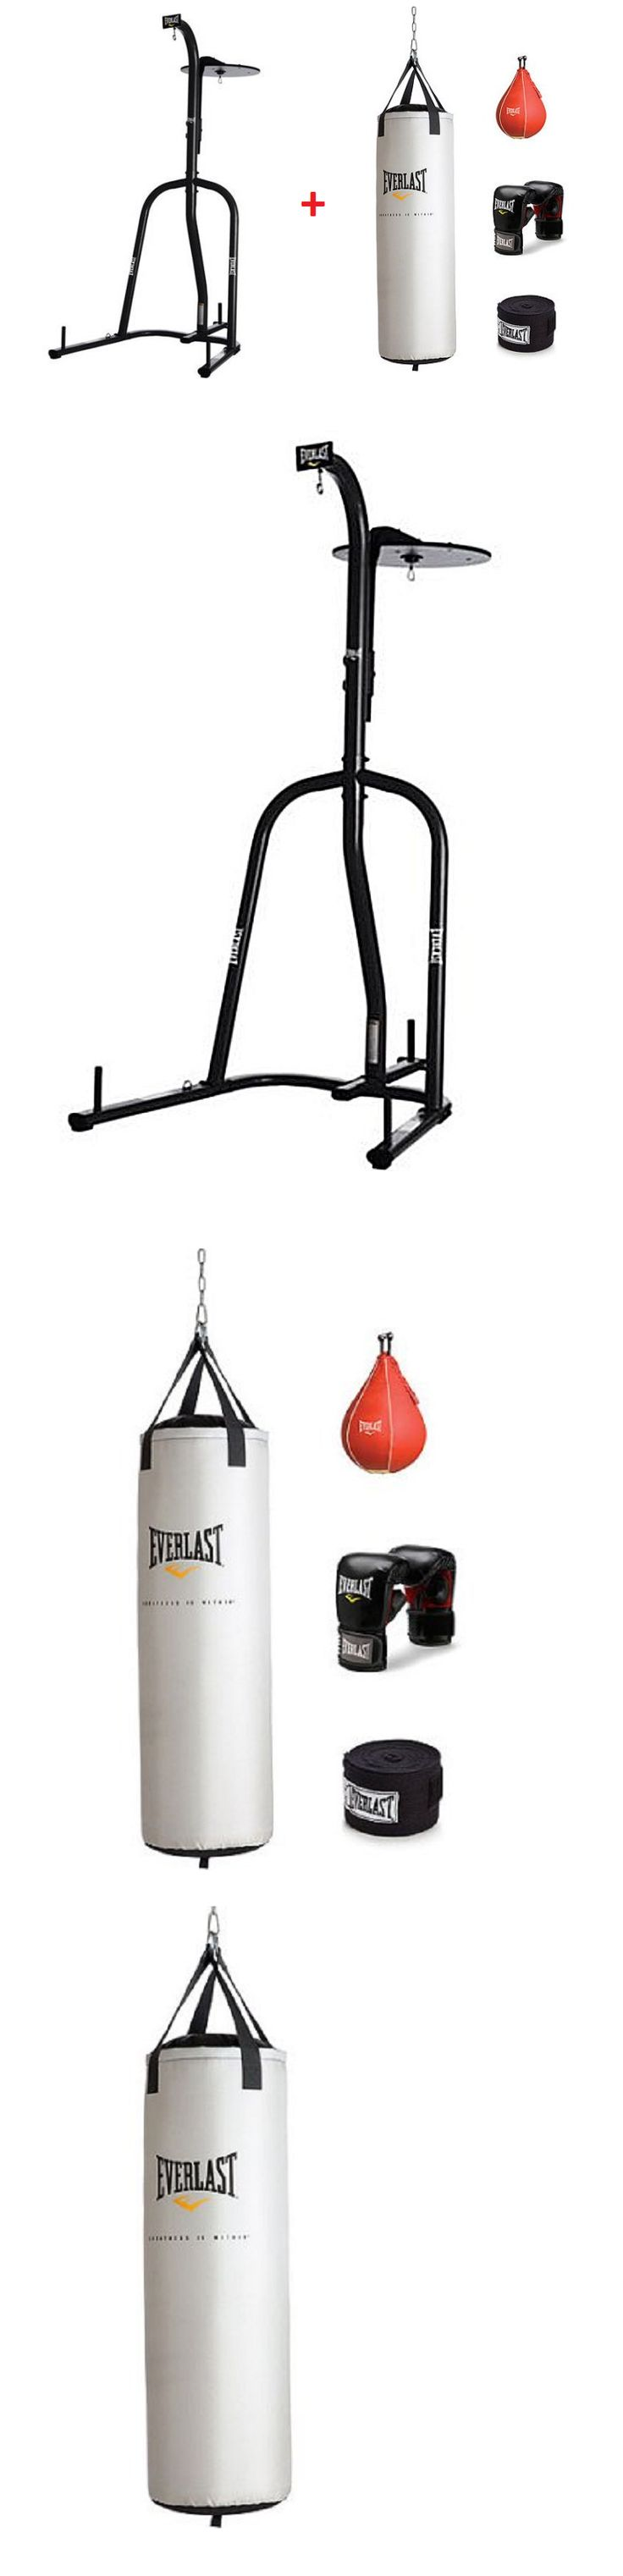 Bag Stands Platforms and Accs 179785: Dual Station Heavy Bag Stand With 70 Lb Punching Bag Kit Boxing Mma Workout Gym -> BUY IT NOW ONLY: $225.99 on eBay!